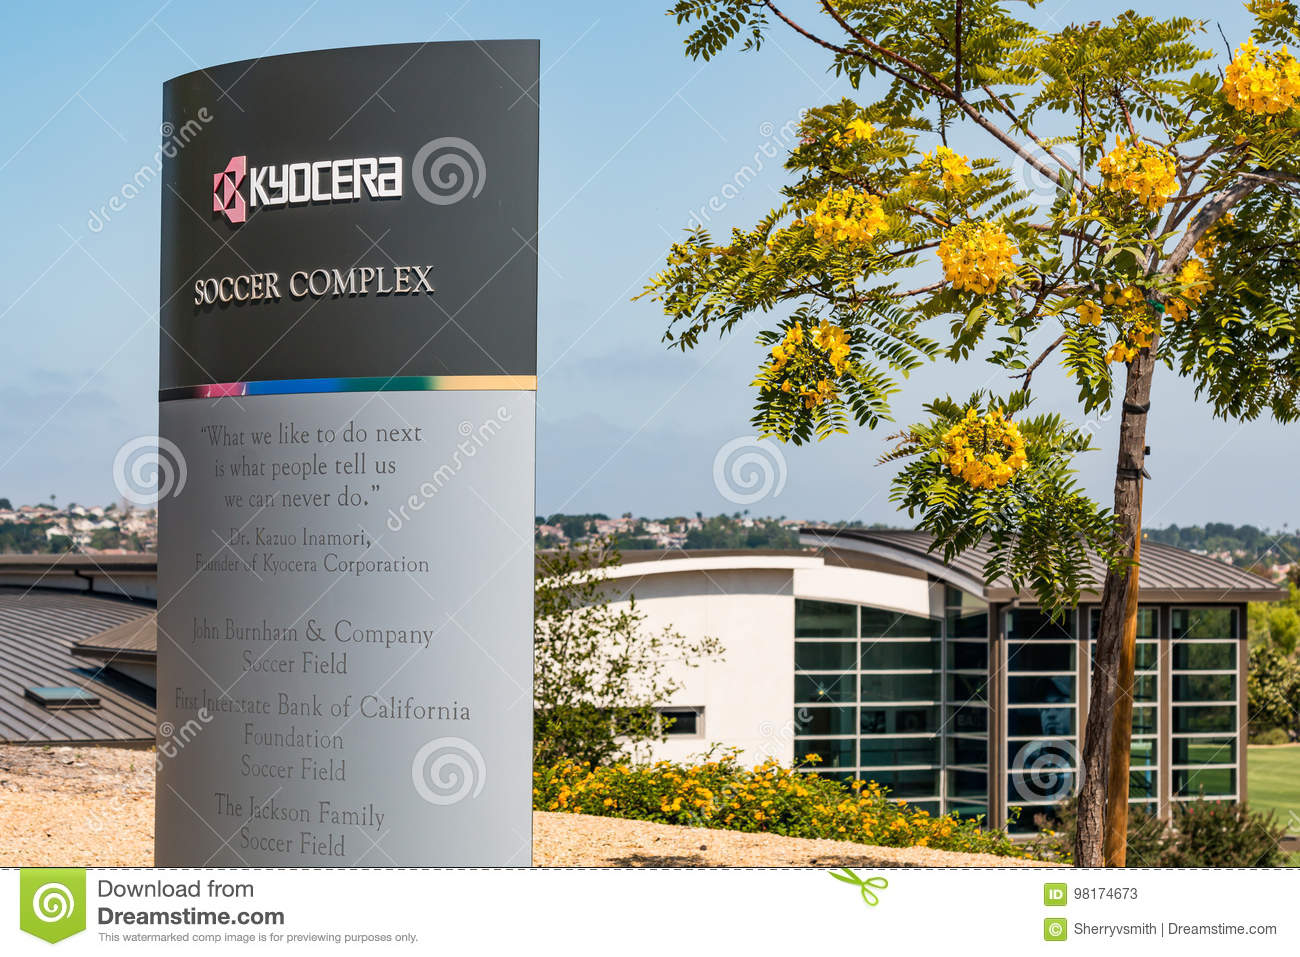 Marker For Kyocera Soccer Complex Training Site For Olympic Athletes